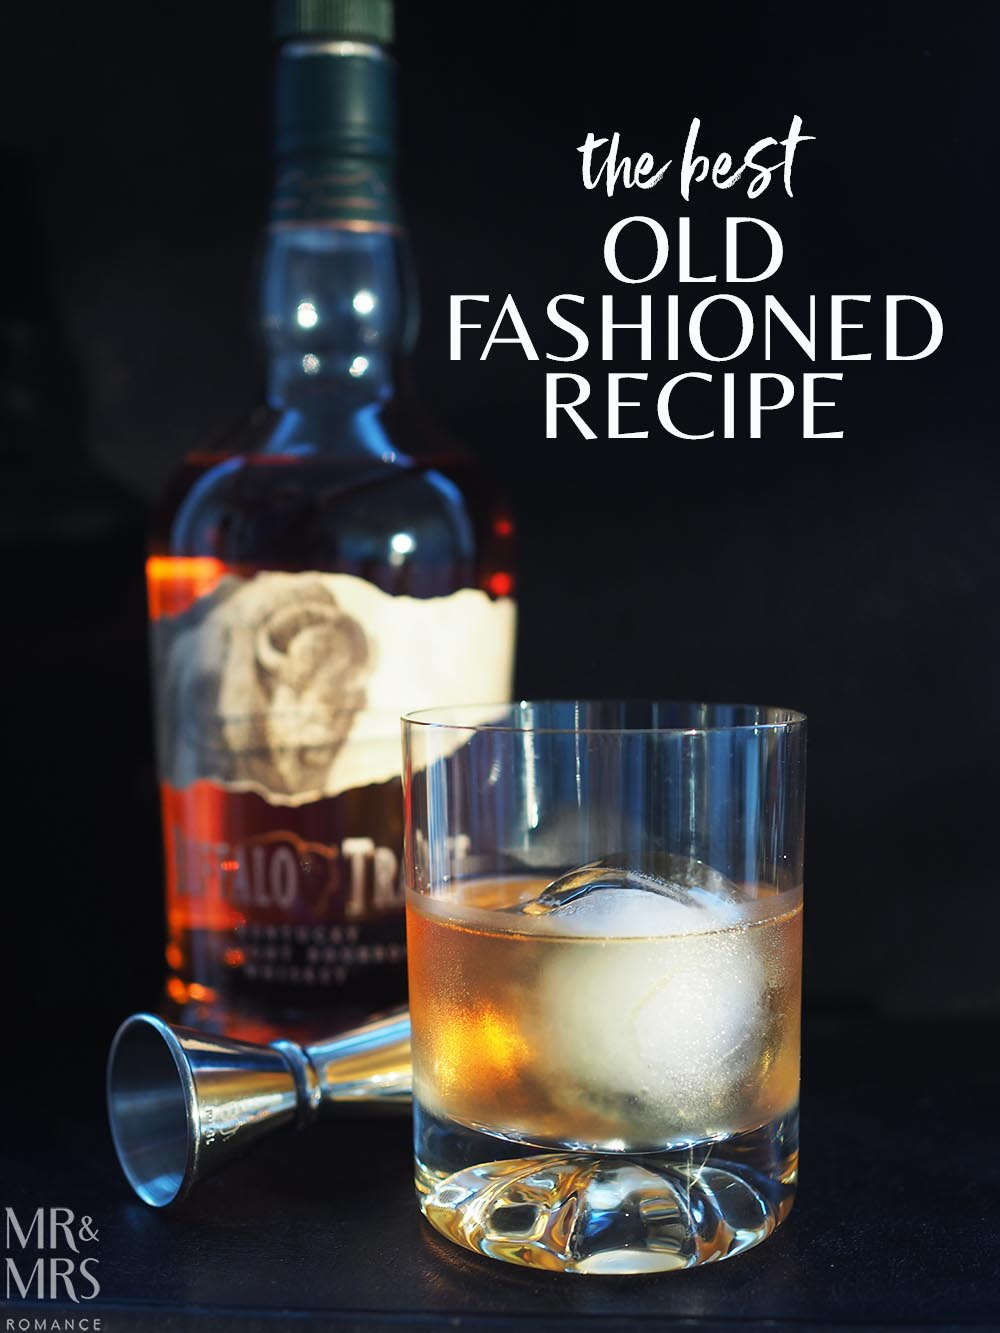 Olf Fashioned whisky cocktail - Buffalo Trace